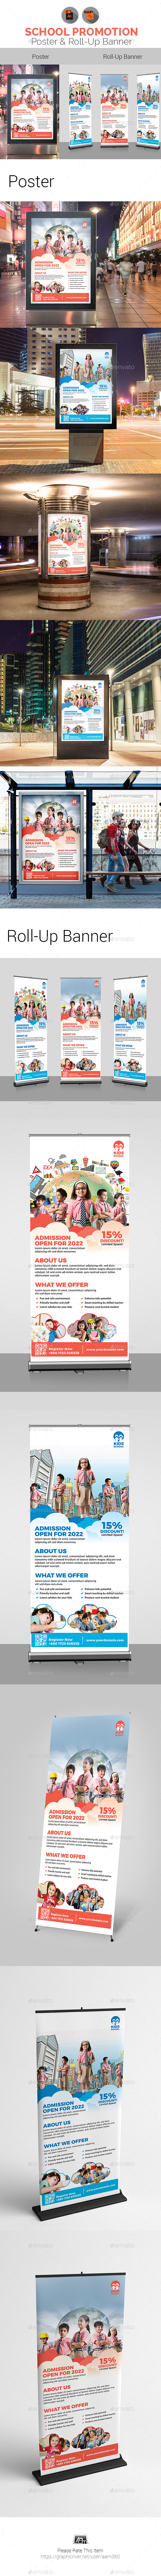 GraphicRiver Junior School Promotional Poster & Roll-Up Banner Bundle 21111110